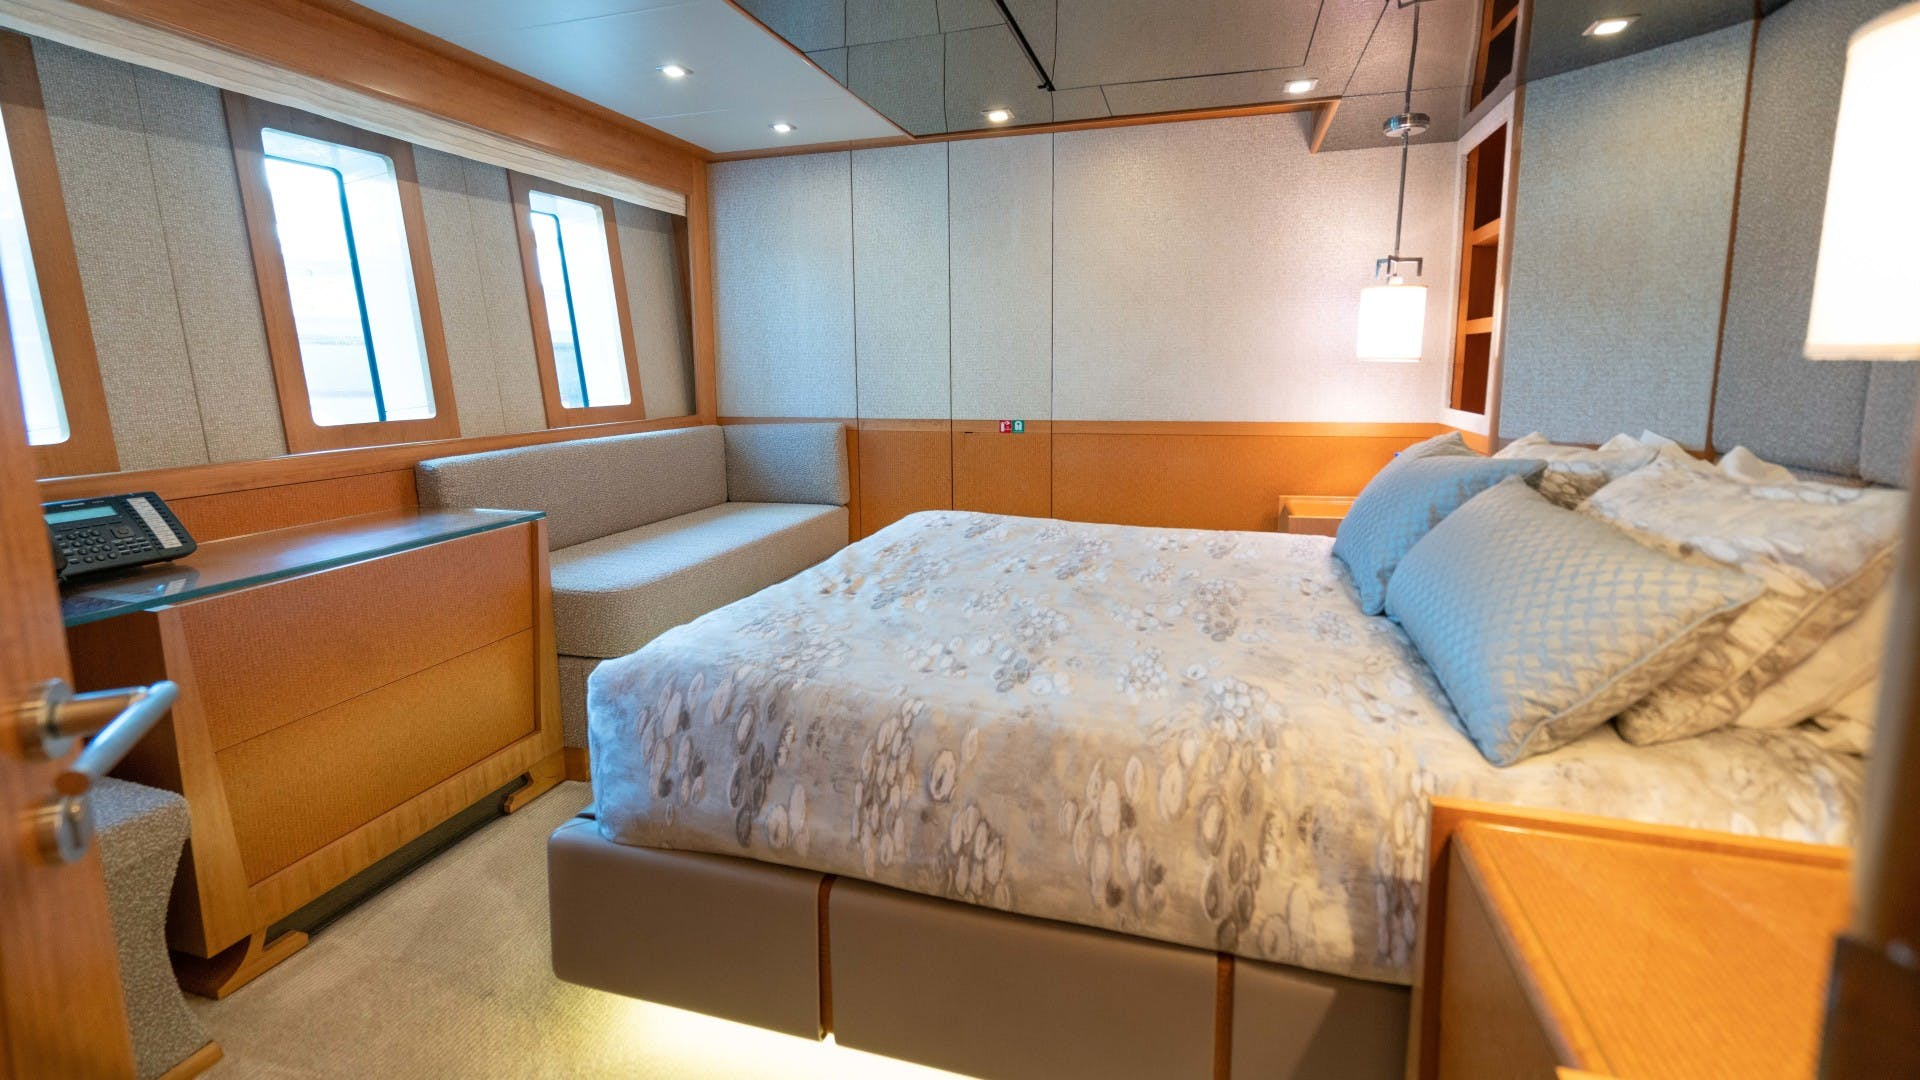 2016 IAG 133' Motor Yacht SERENITY   Picture 7 of 120